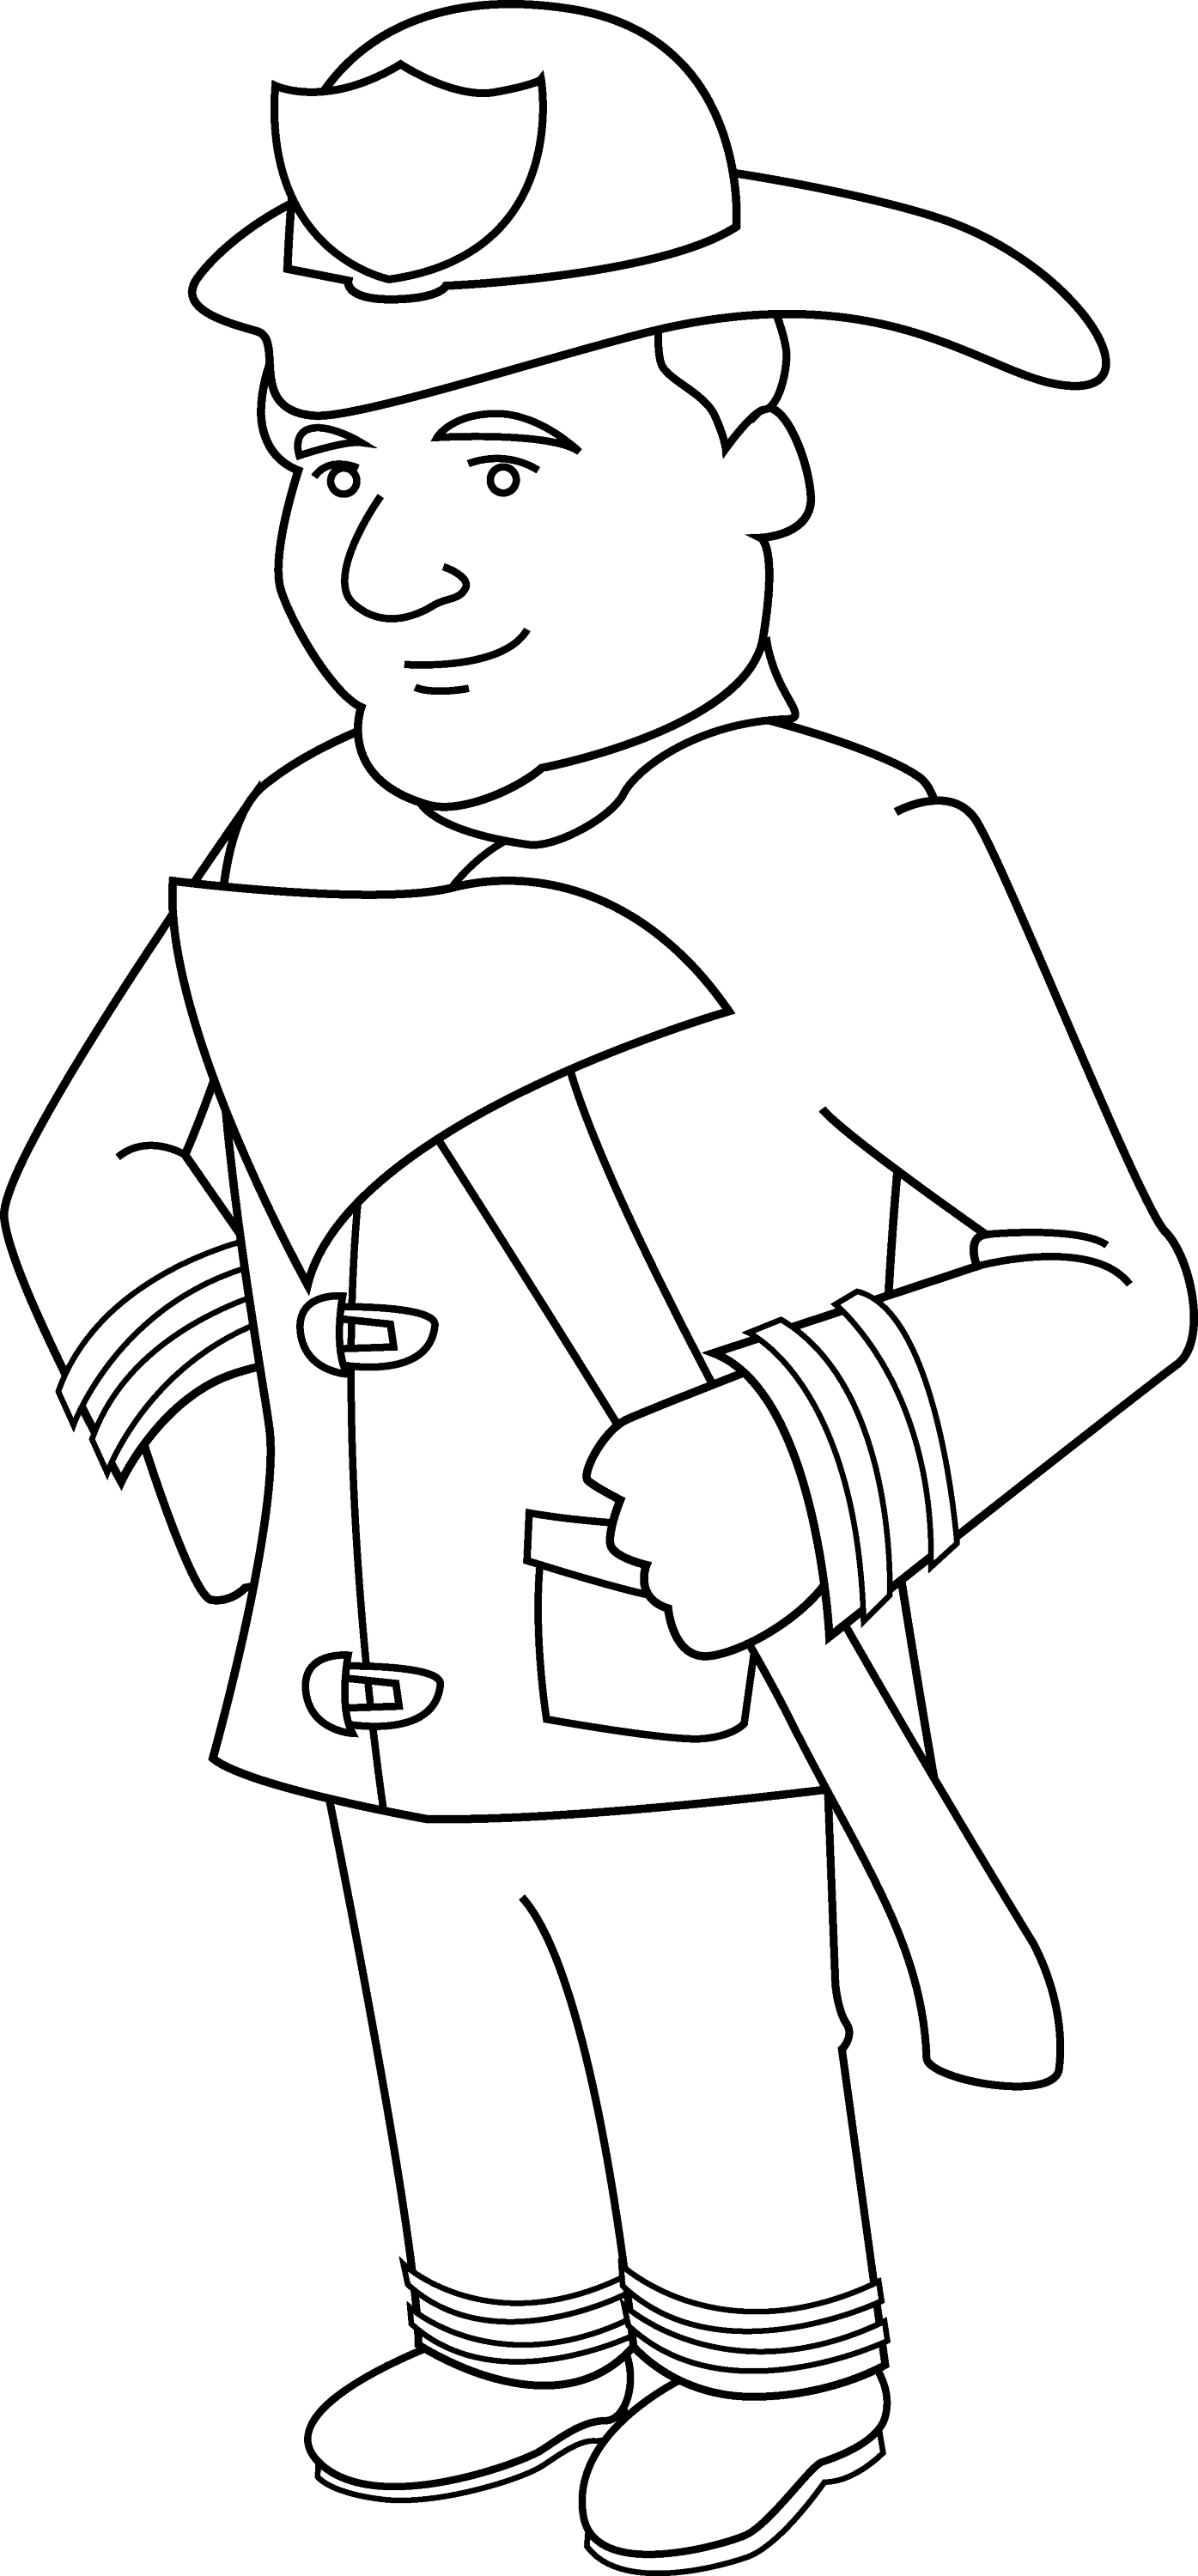 coloring fireman clipart black and white firefighter coloring pages getcoloringpagescom black fireman clipart white coloring and